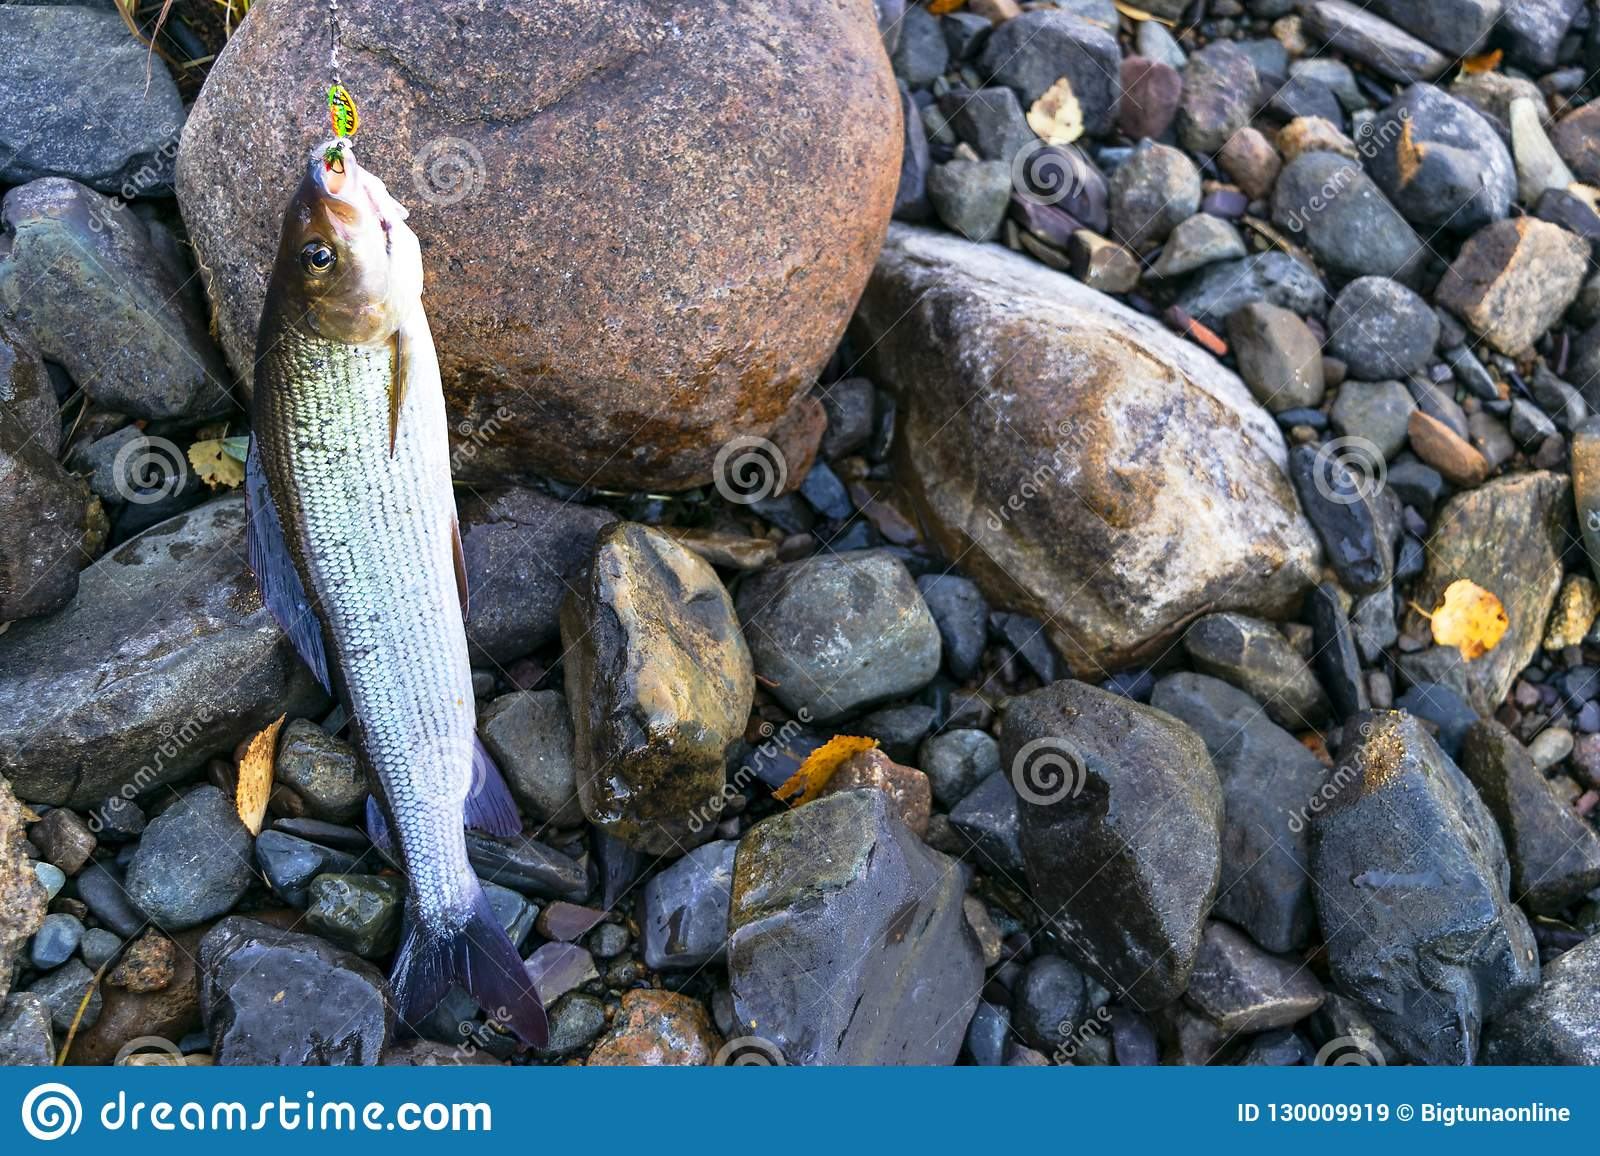 f4db71efe677d Fly Fishing Stock Images - Download 19